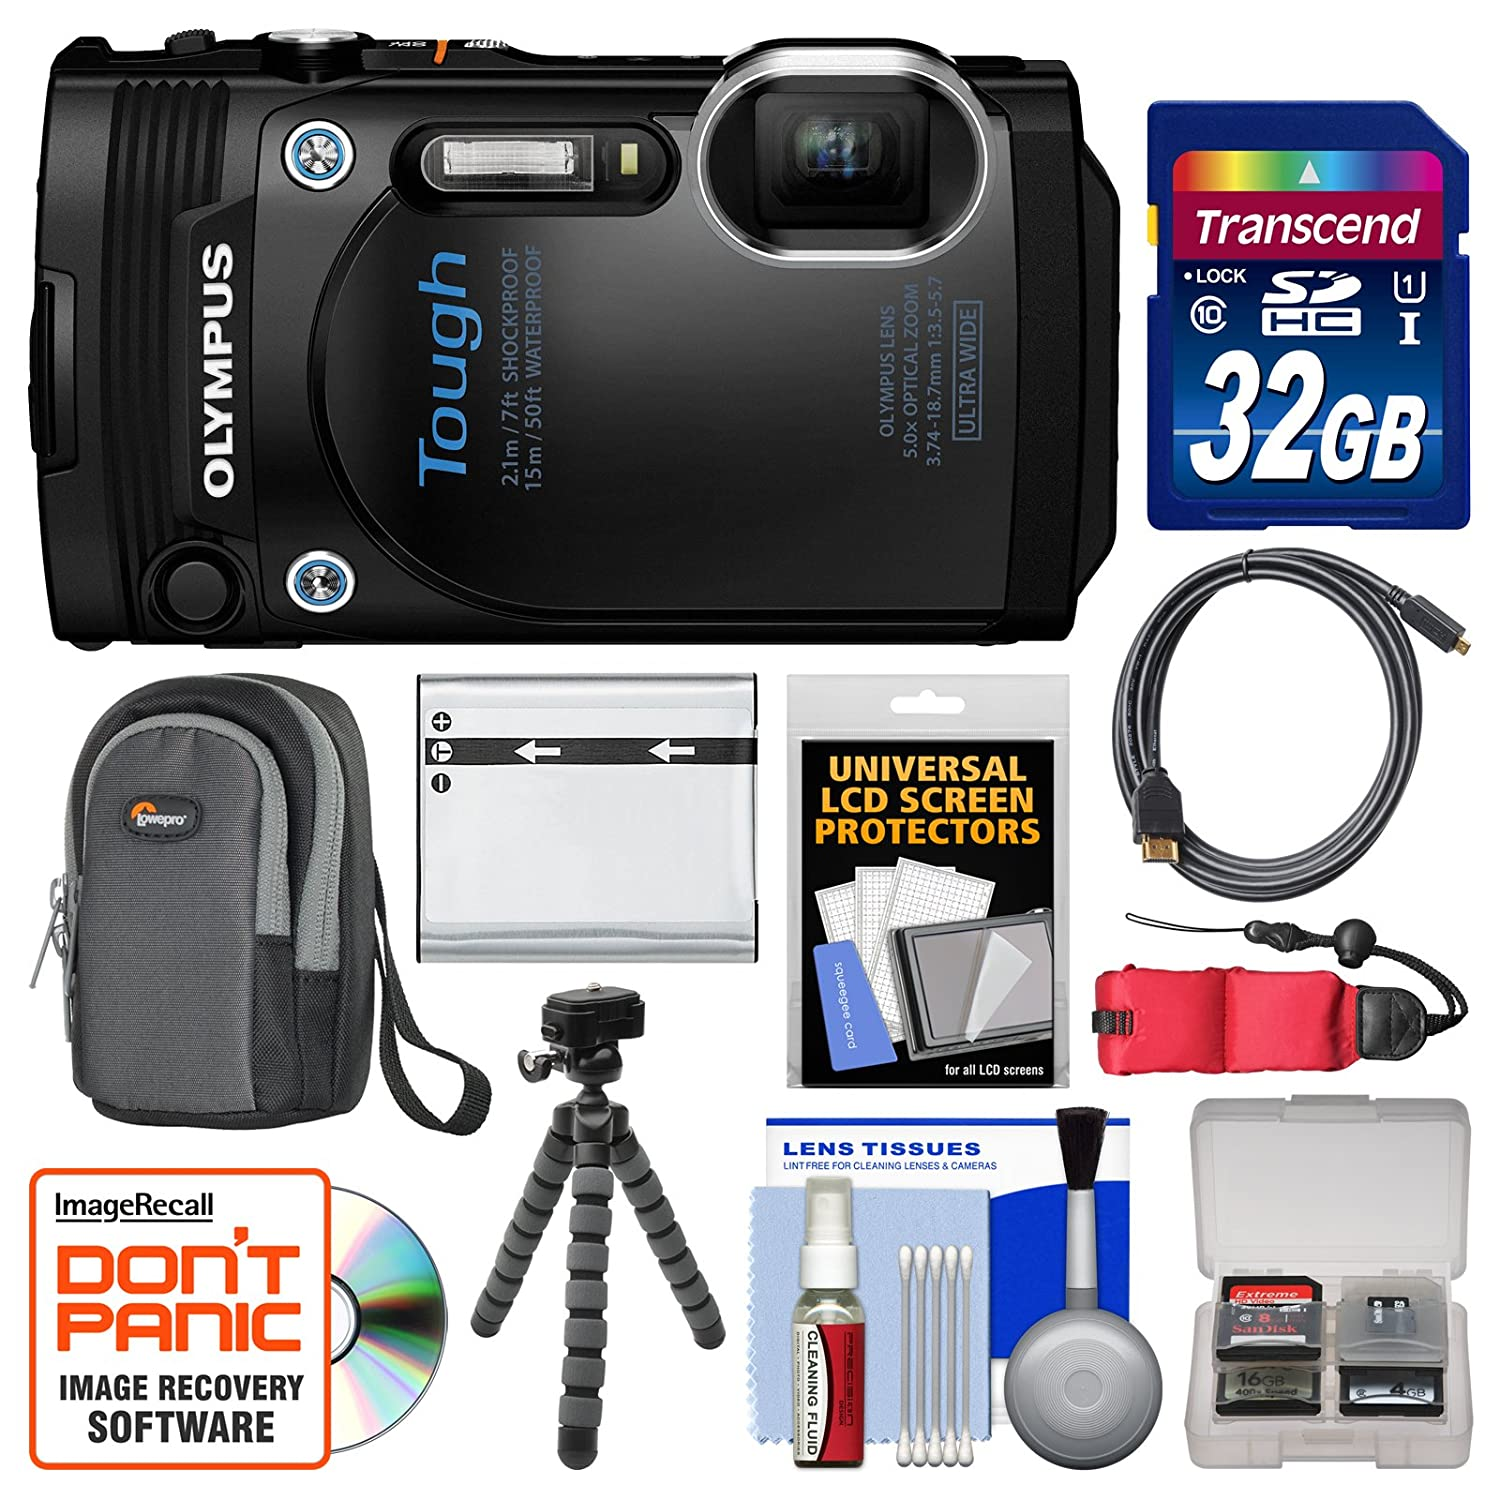 Olympus Tough TG-860 iHS Wi-Fi GPS Shock & Waterproof Digital Camera (Black) with 32GB Card + Ca